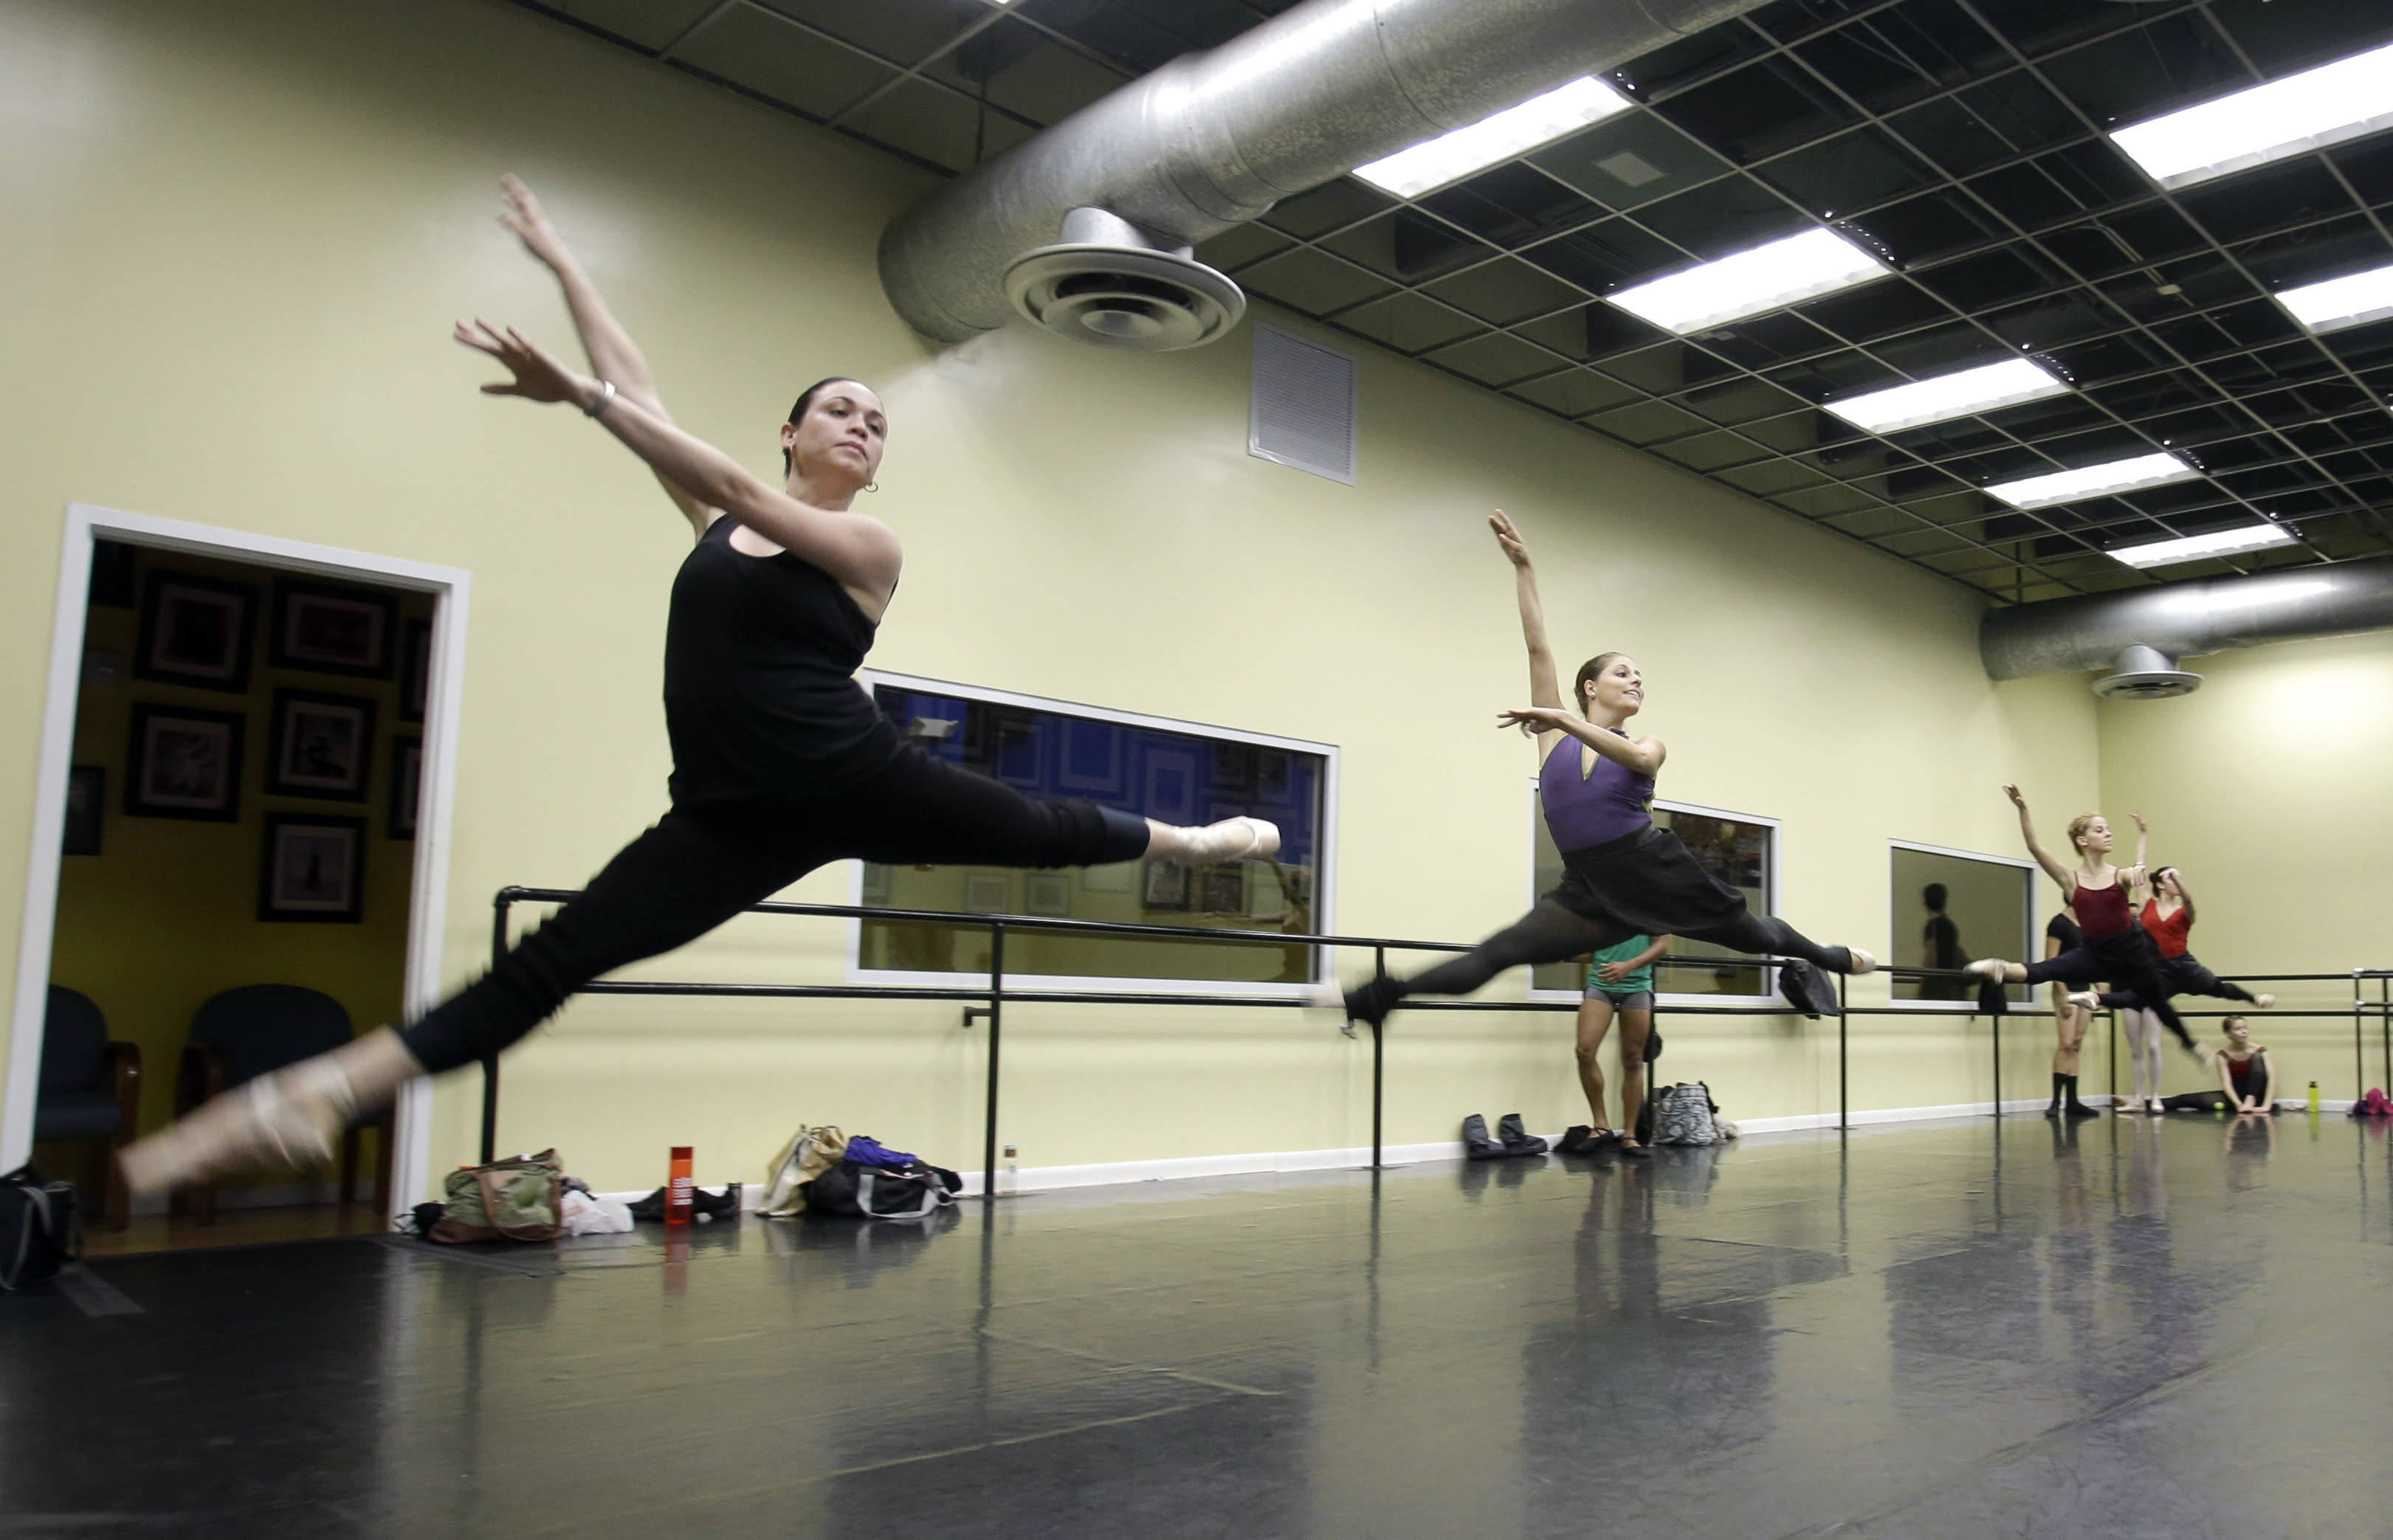 In this photo taken Friday, May 17, 2013, ballet dancers practice in a dance studio in Miami. These dancers could be among the young talent of any ballet company, but for the moment they are something else: Immigrants in the United States trying to land dancing opportunities while navigating cultural differences and learning English. The ballerinas fled from the Cuban National Ballet while on tour in Mexico in April, and crossed the border into Texas. (AP Photo/Alan Diaz)